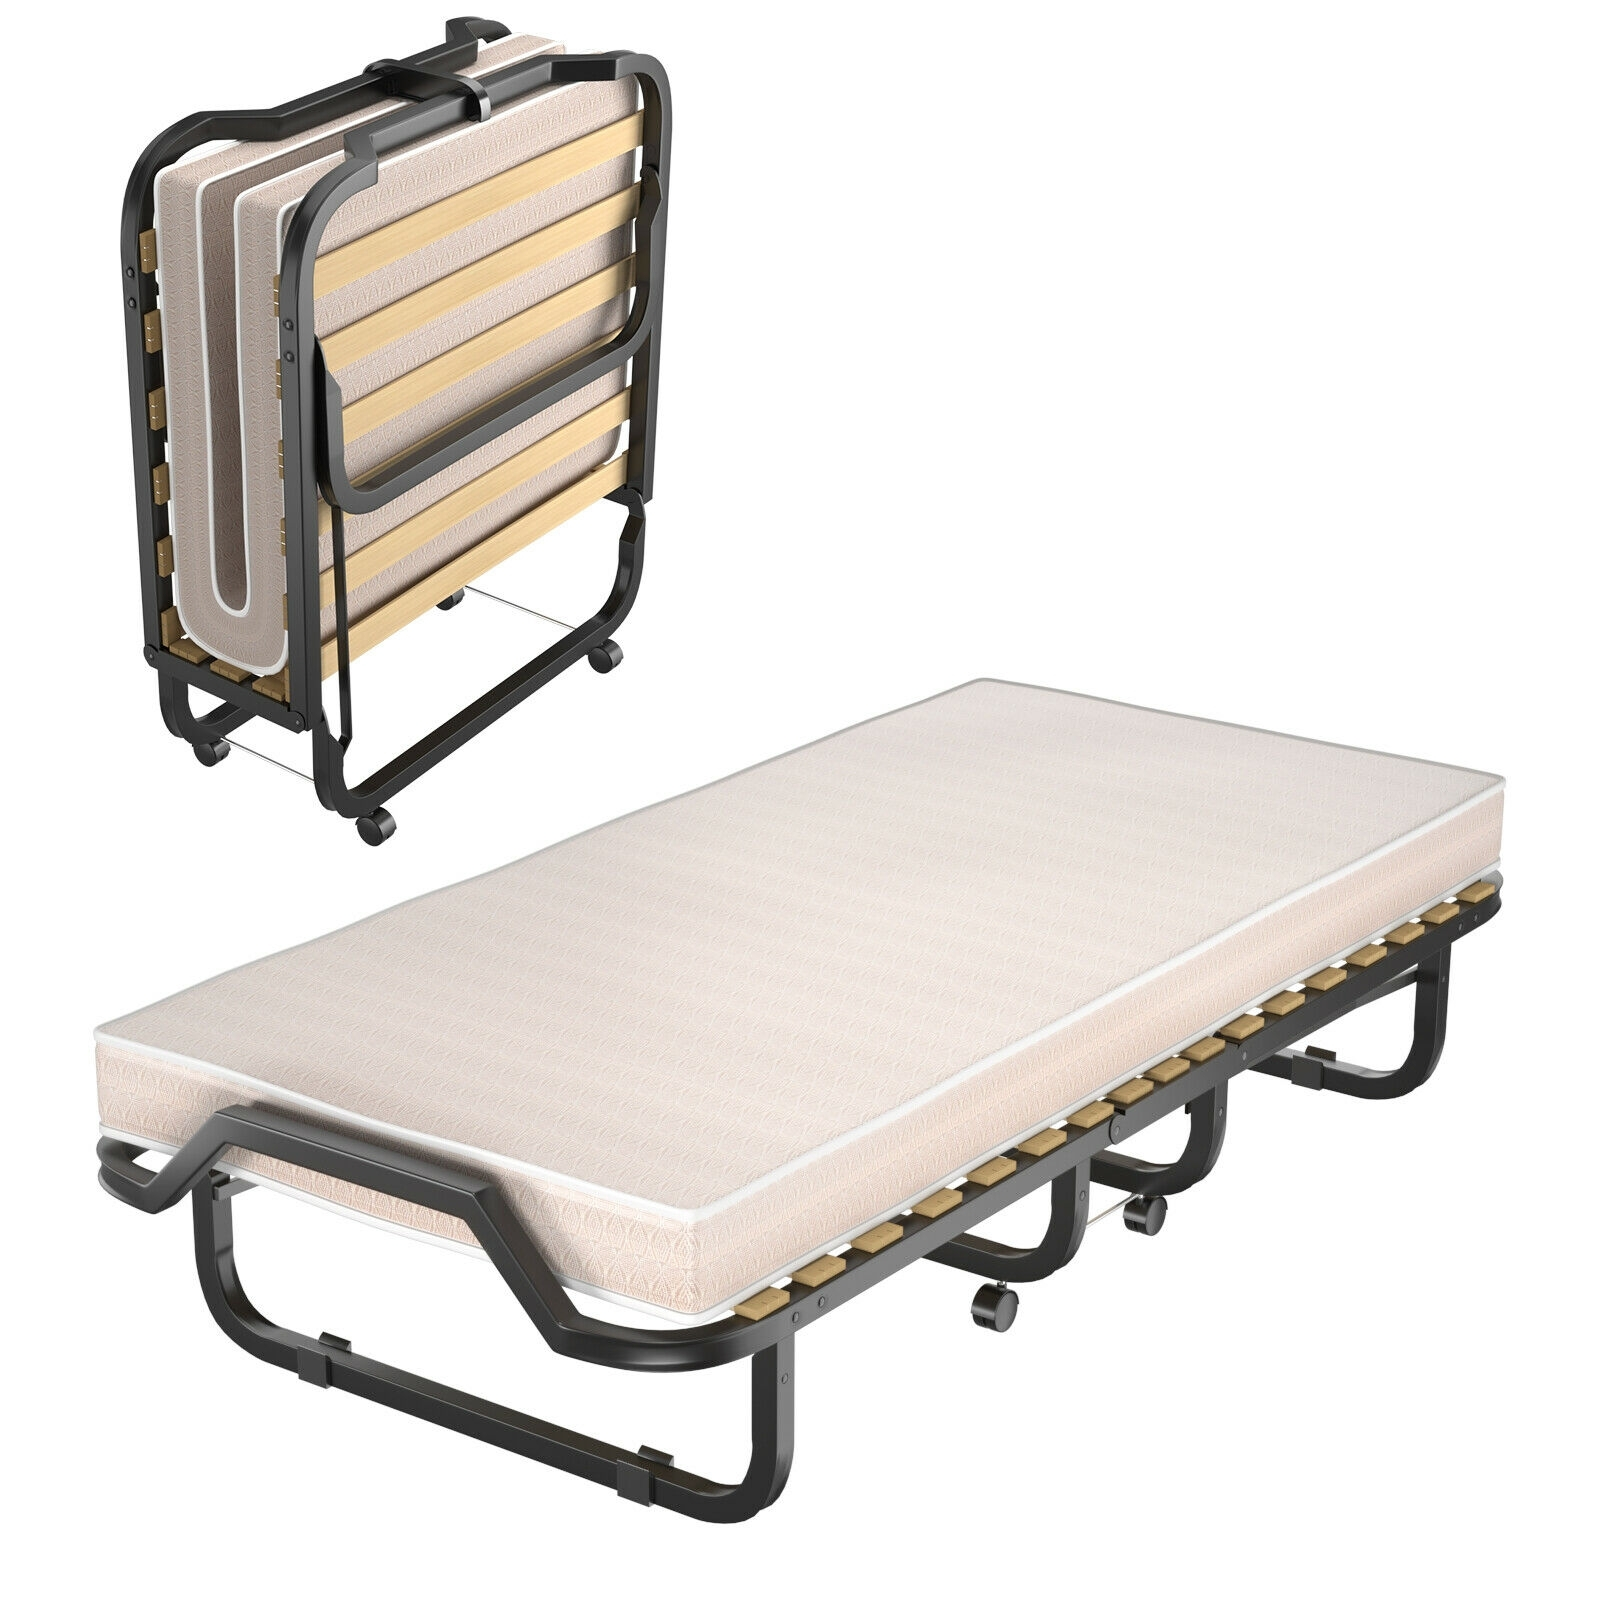 Image of Folding Rollaway Bed Extra Guest with Memory Foam Mattress